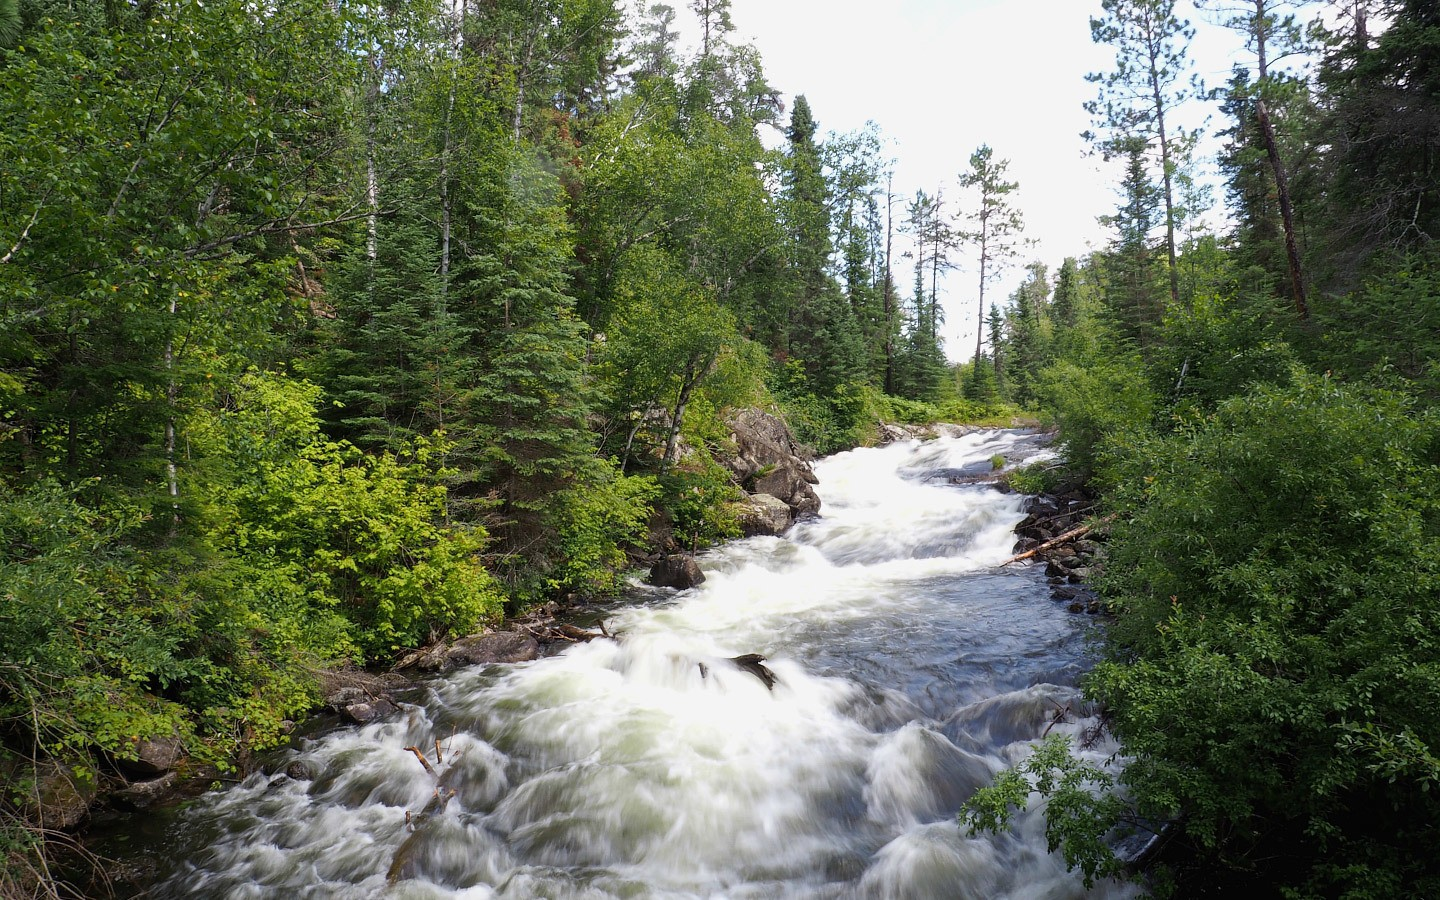 River flowing at Rushing River Provincial Park, Ontario